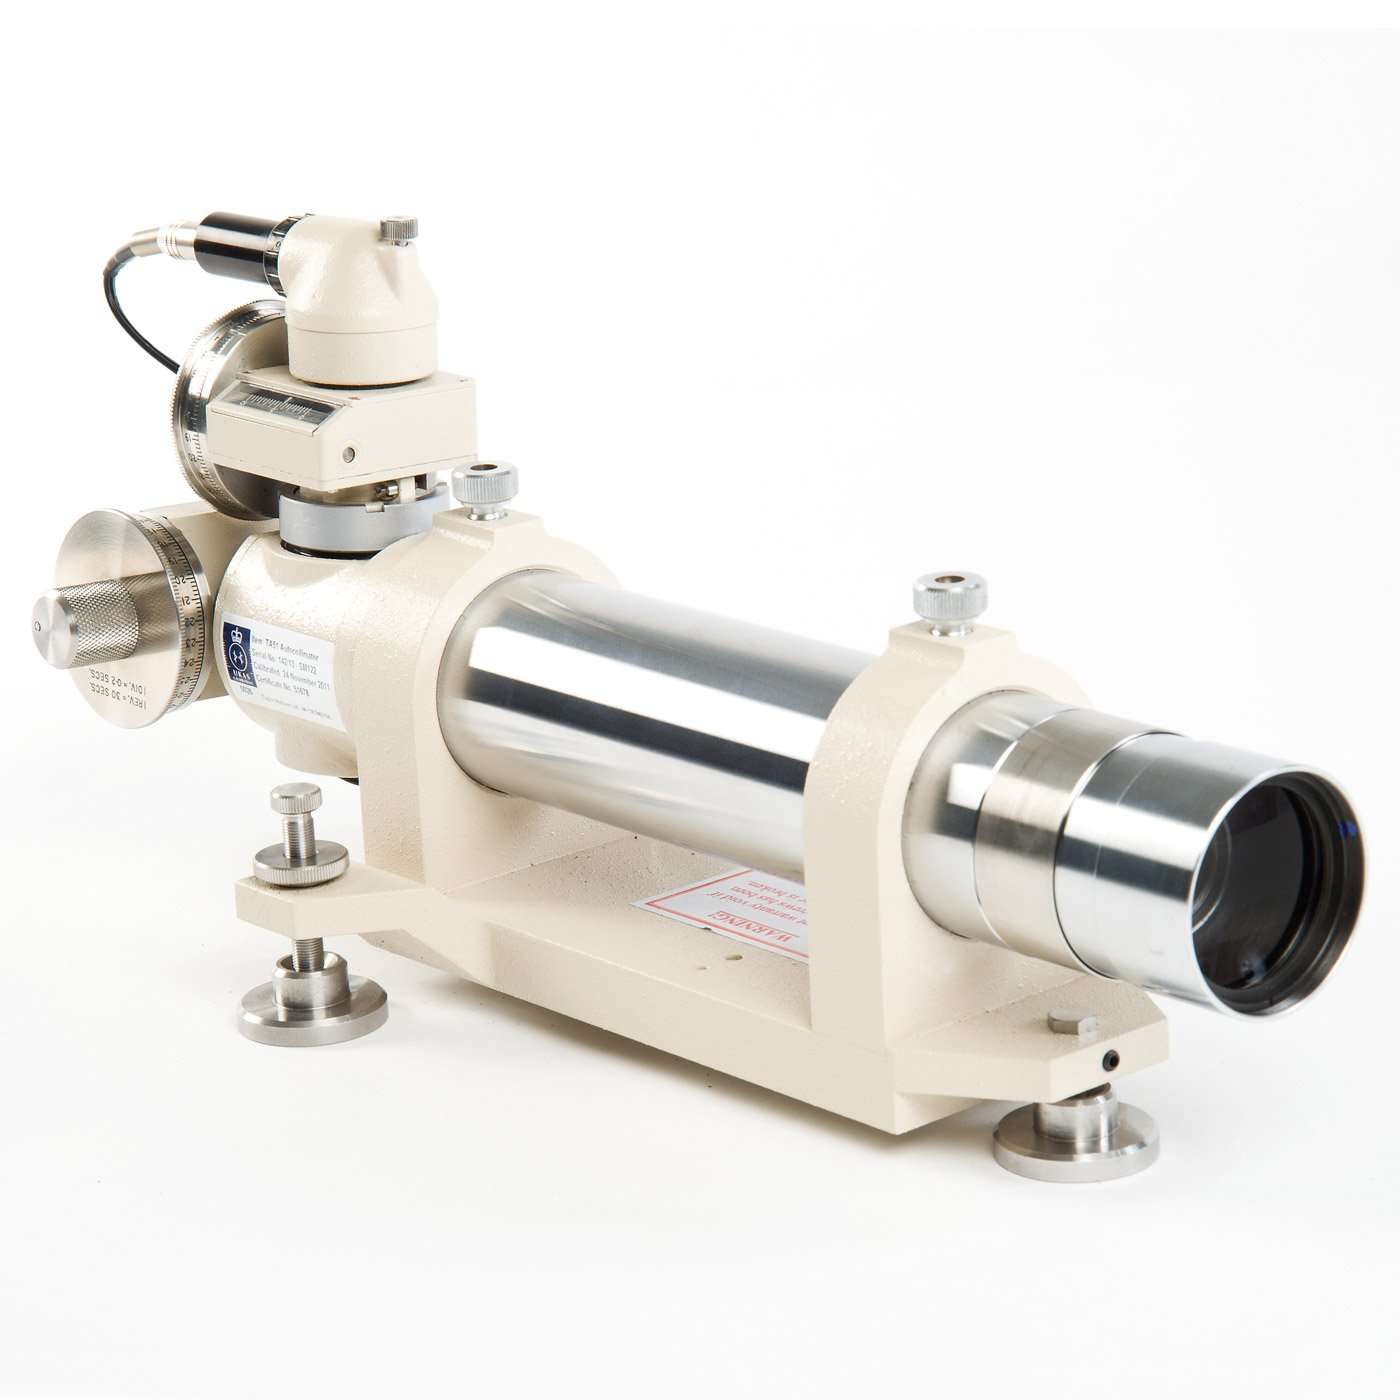 TA51 Visual Autocollimator for measurement and calibration of indexing heads